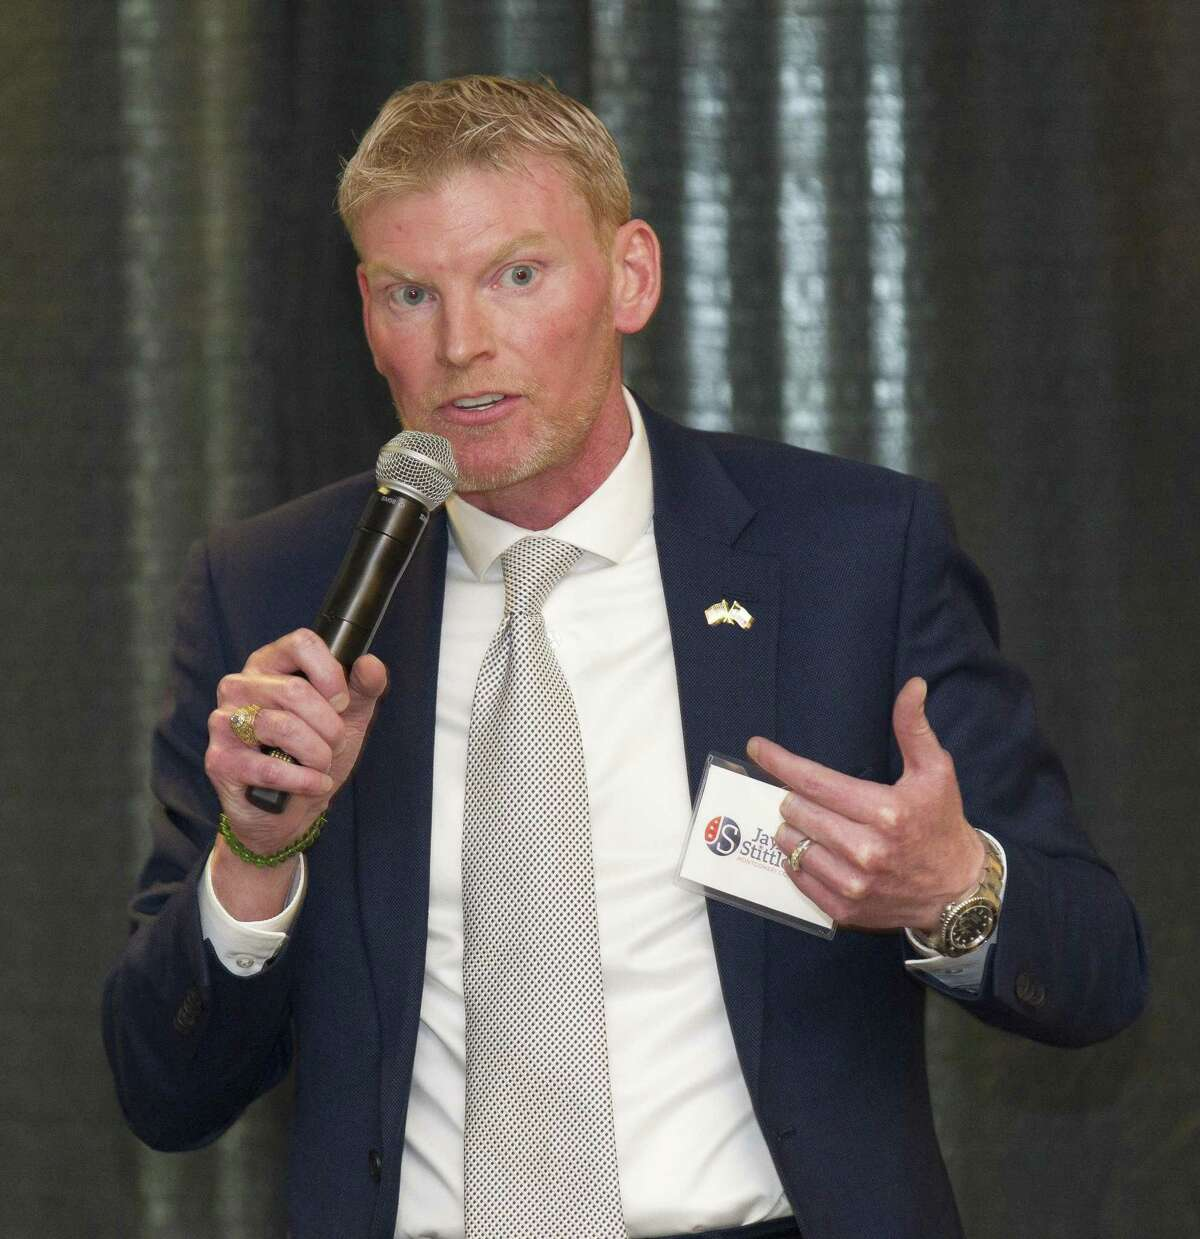 Jay Stittleburg, Democratic candidate for Montgomery County Judge, speaks during the Conroe/Lake Conroe Chamber of Commerce candidate forum at the Lone Star Convention & Expo Center, Tuesday, Feb. 6, 2018, in Conroe.